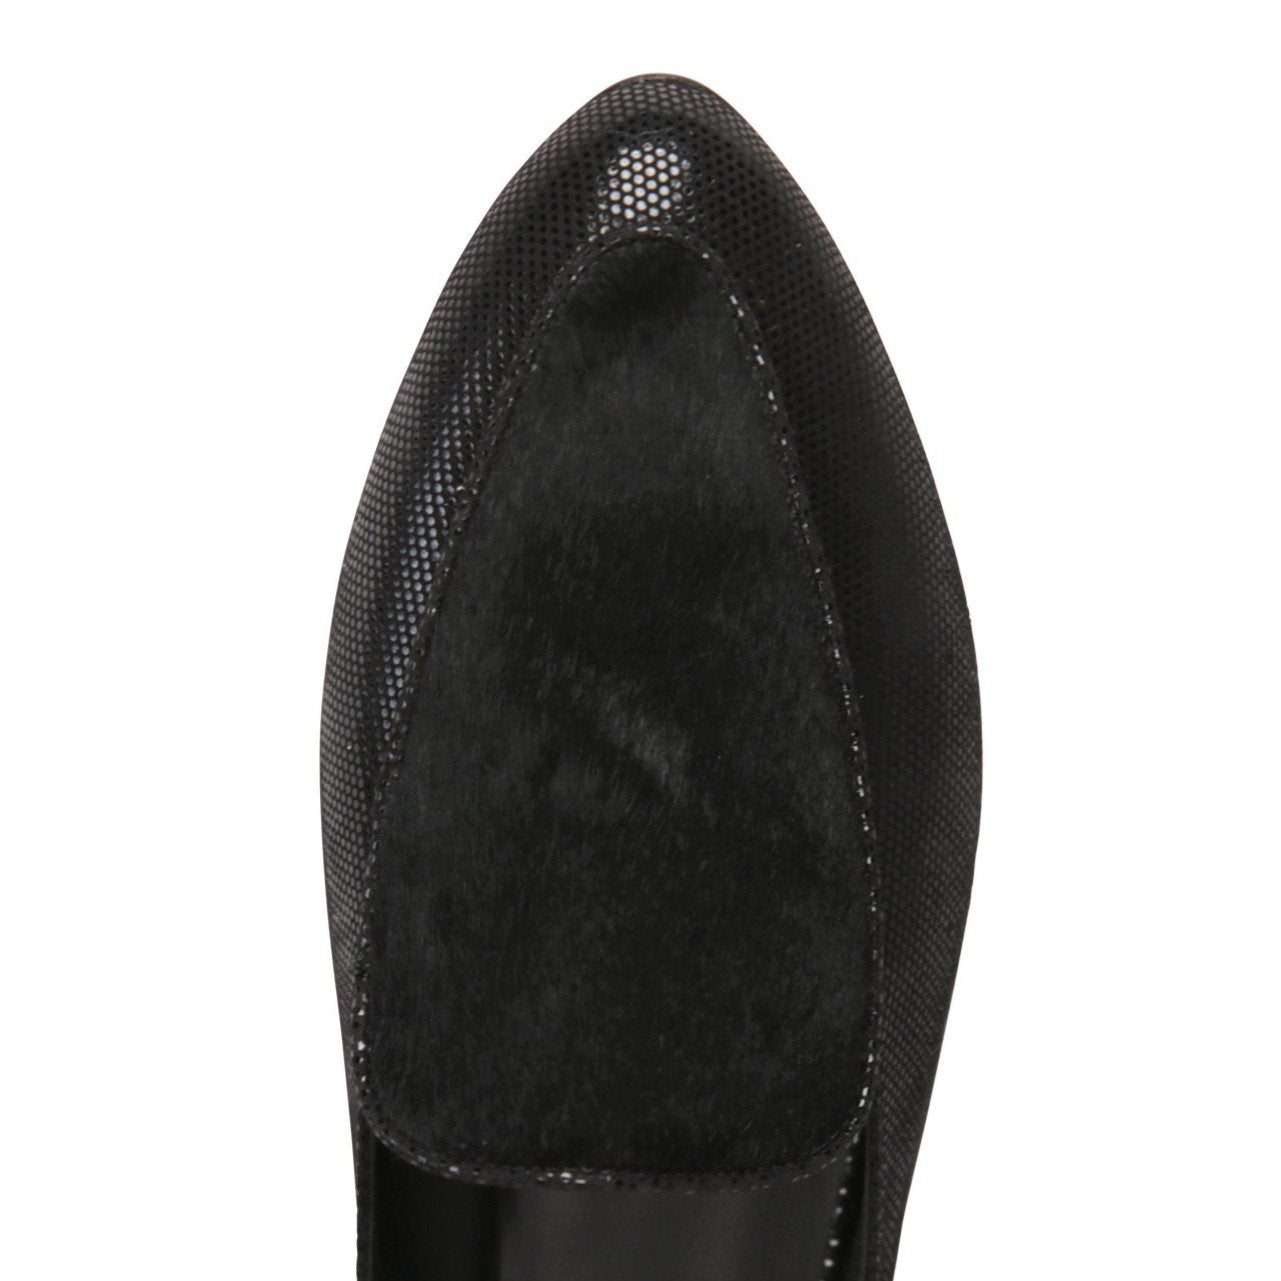 ISEO - Lady + Calf Hair Nero, VIAJIYU - Women's Hand Made Sustainable Luxury Shoes. Made in Italy. Made to Order.